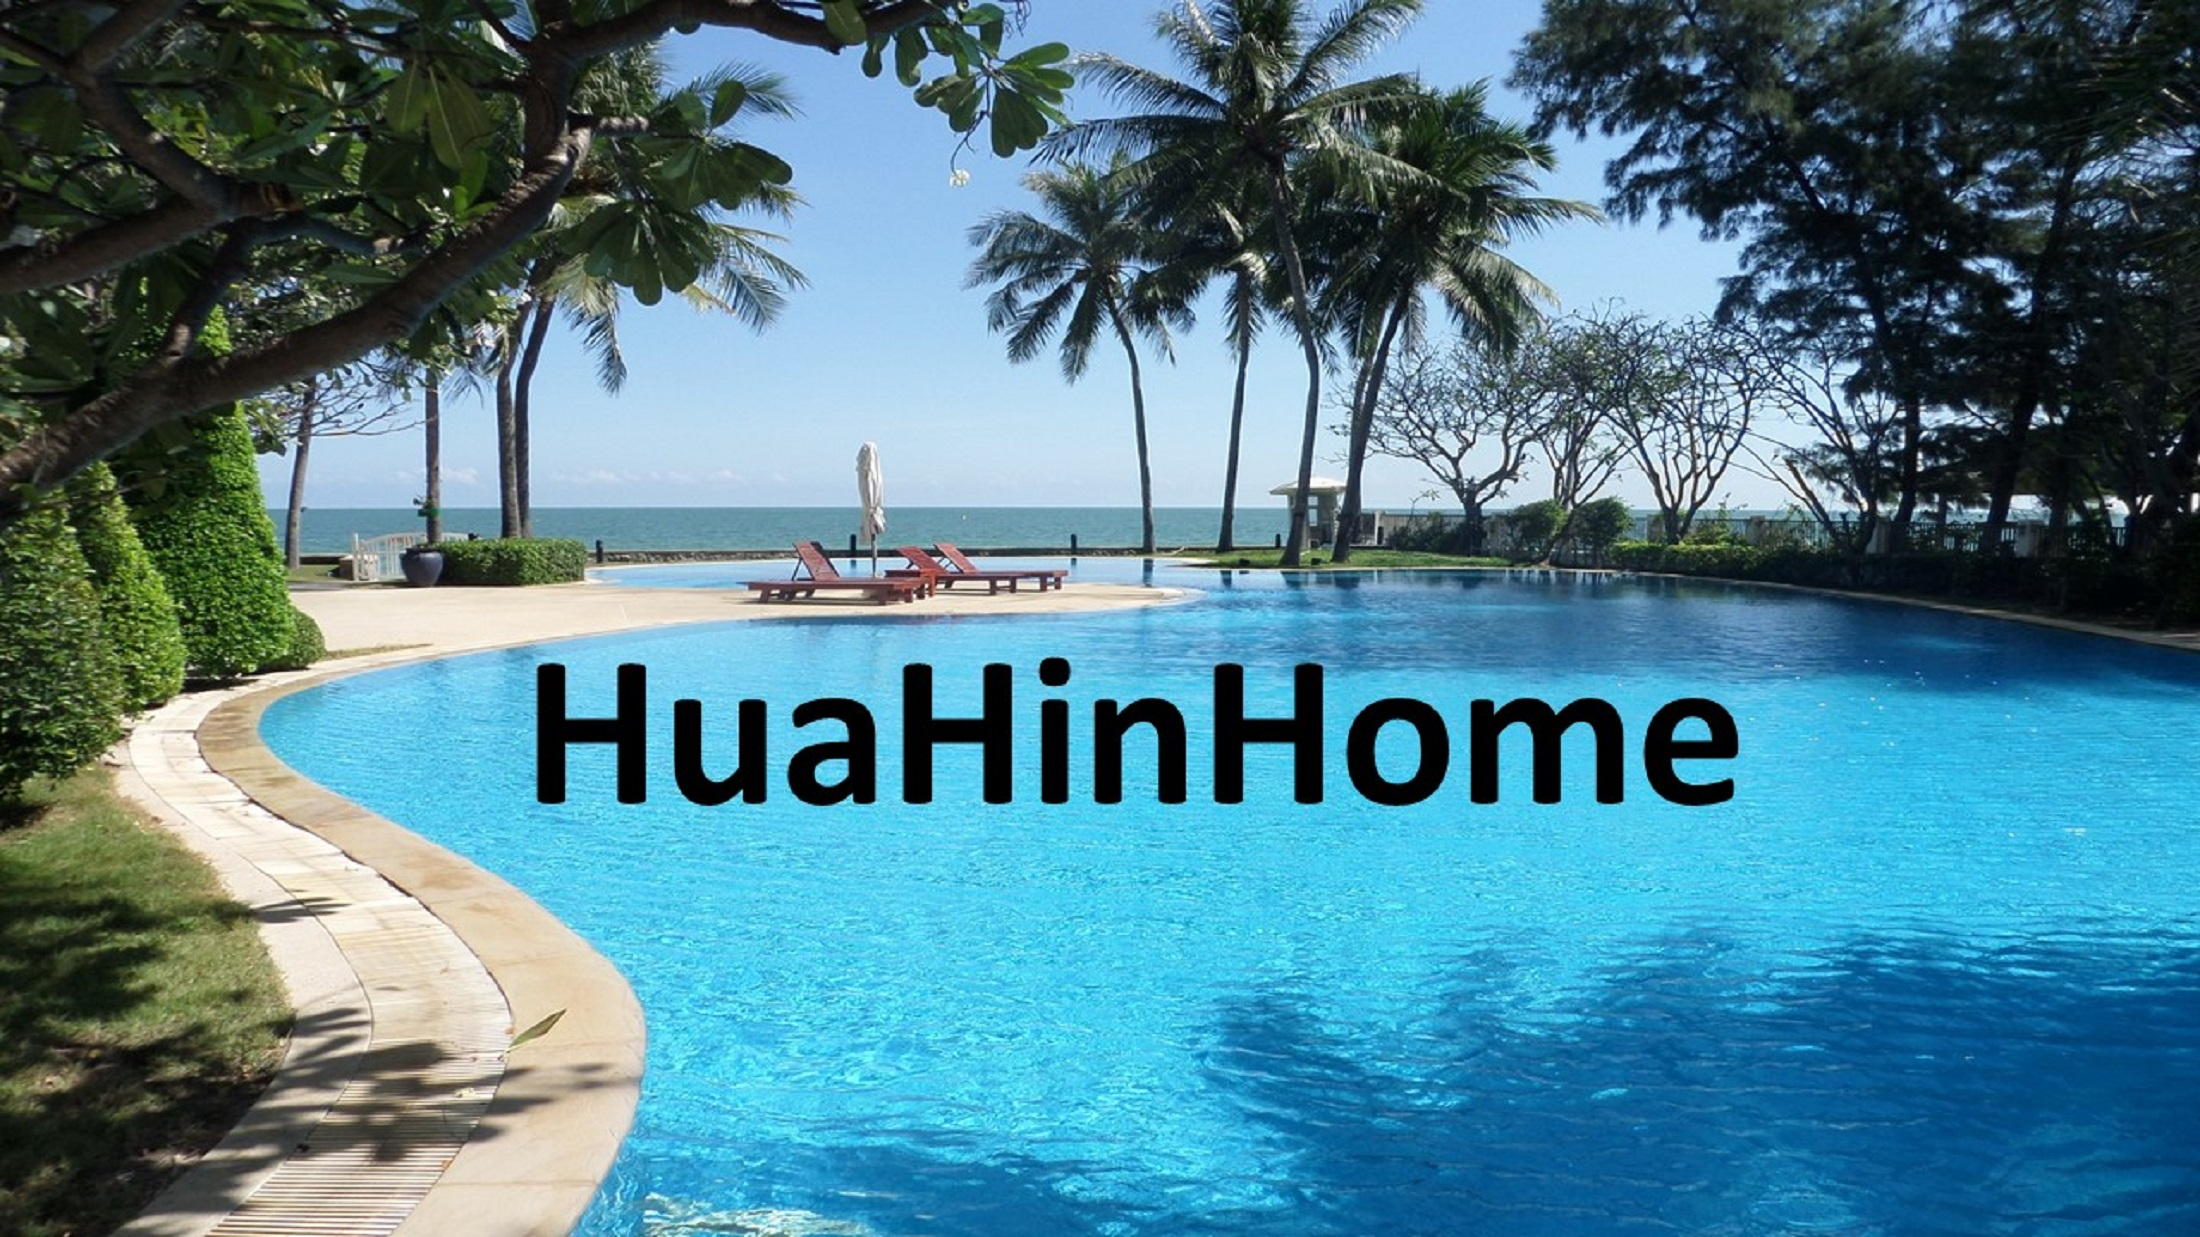 Huahinhome | Huahinhome   Condos with 4 bedrooms